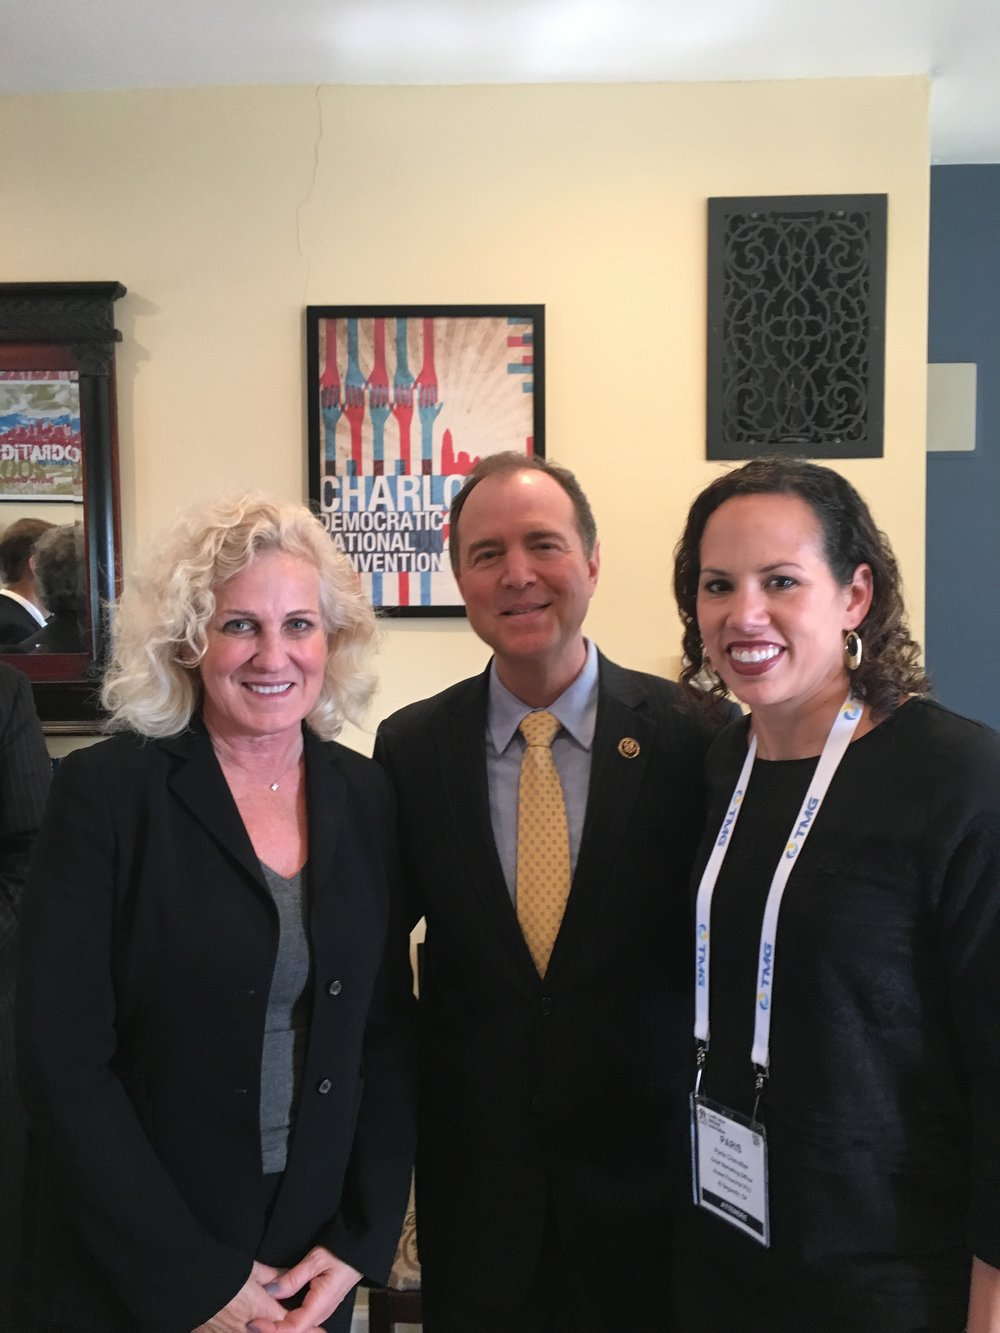 Chevalier hiking the hill at GAC with Teresa Freeborn, Xceed's CEO, and Representative Adam Schiff